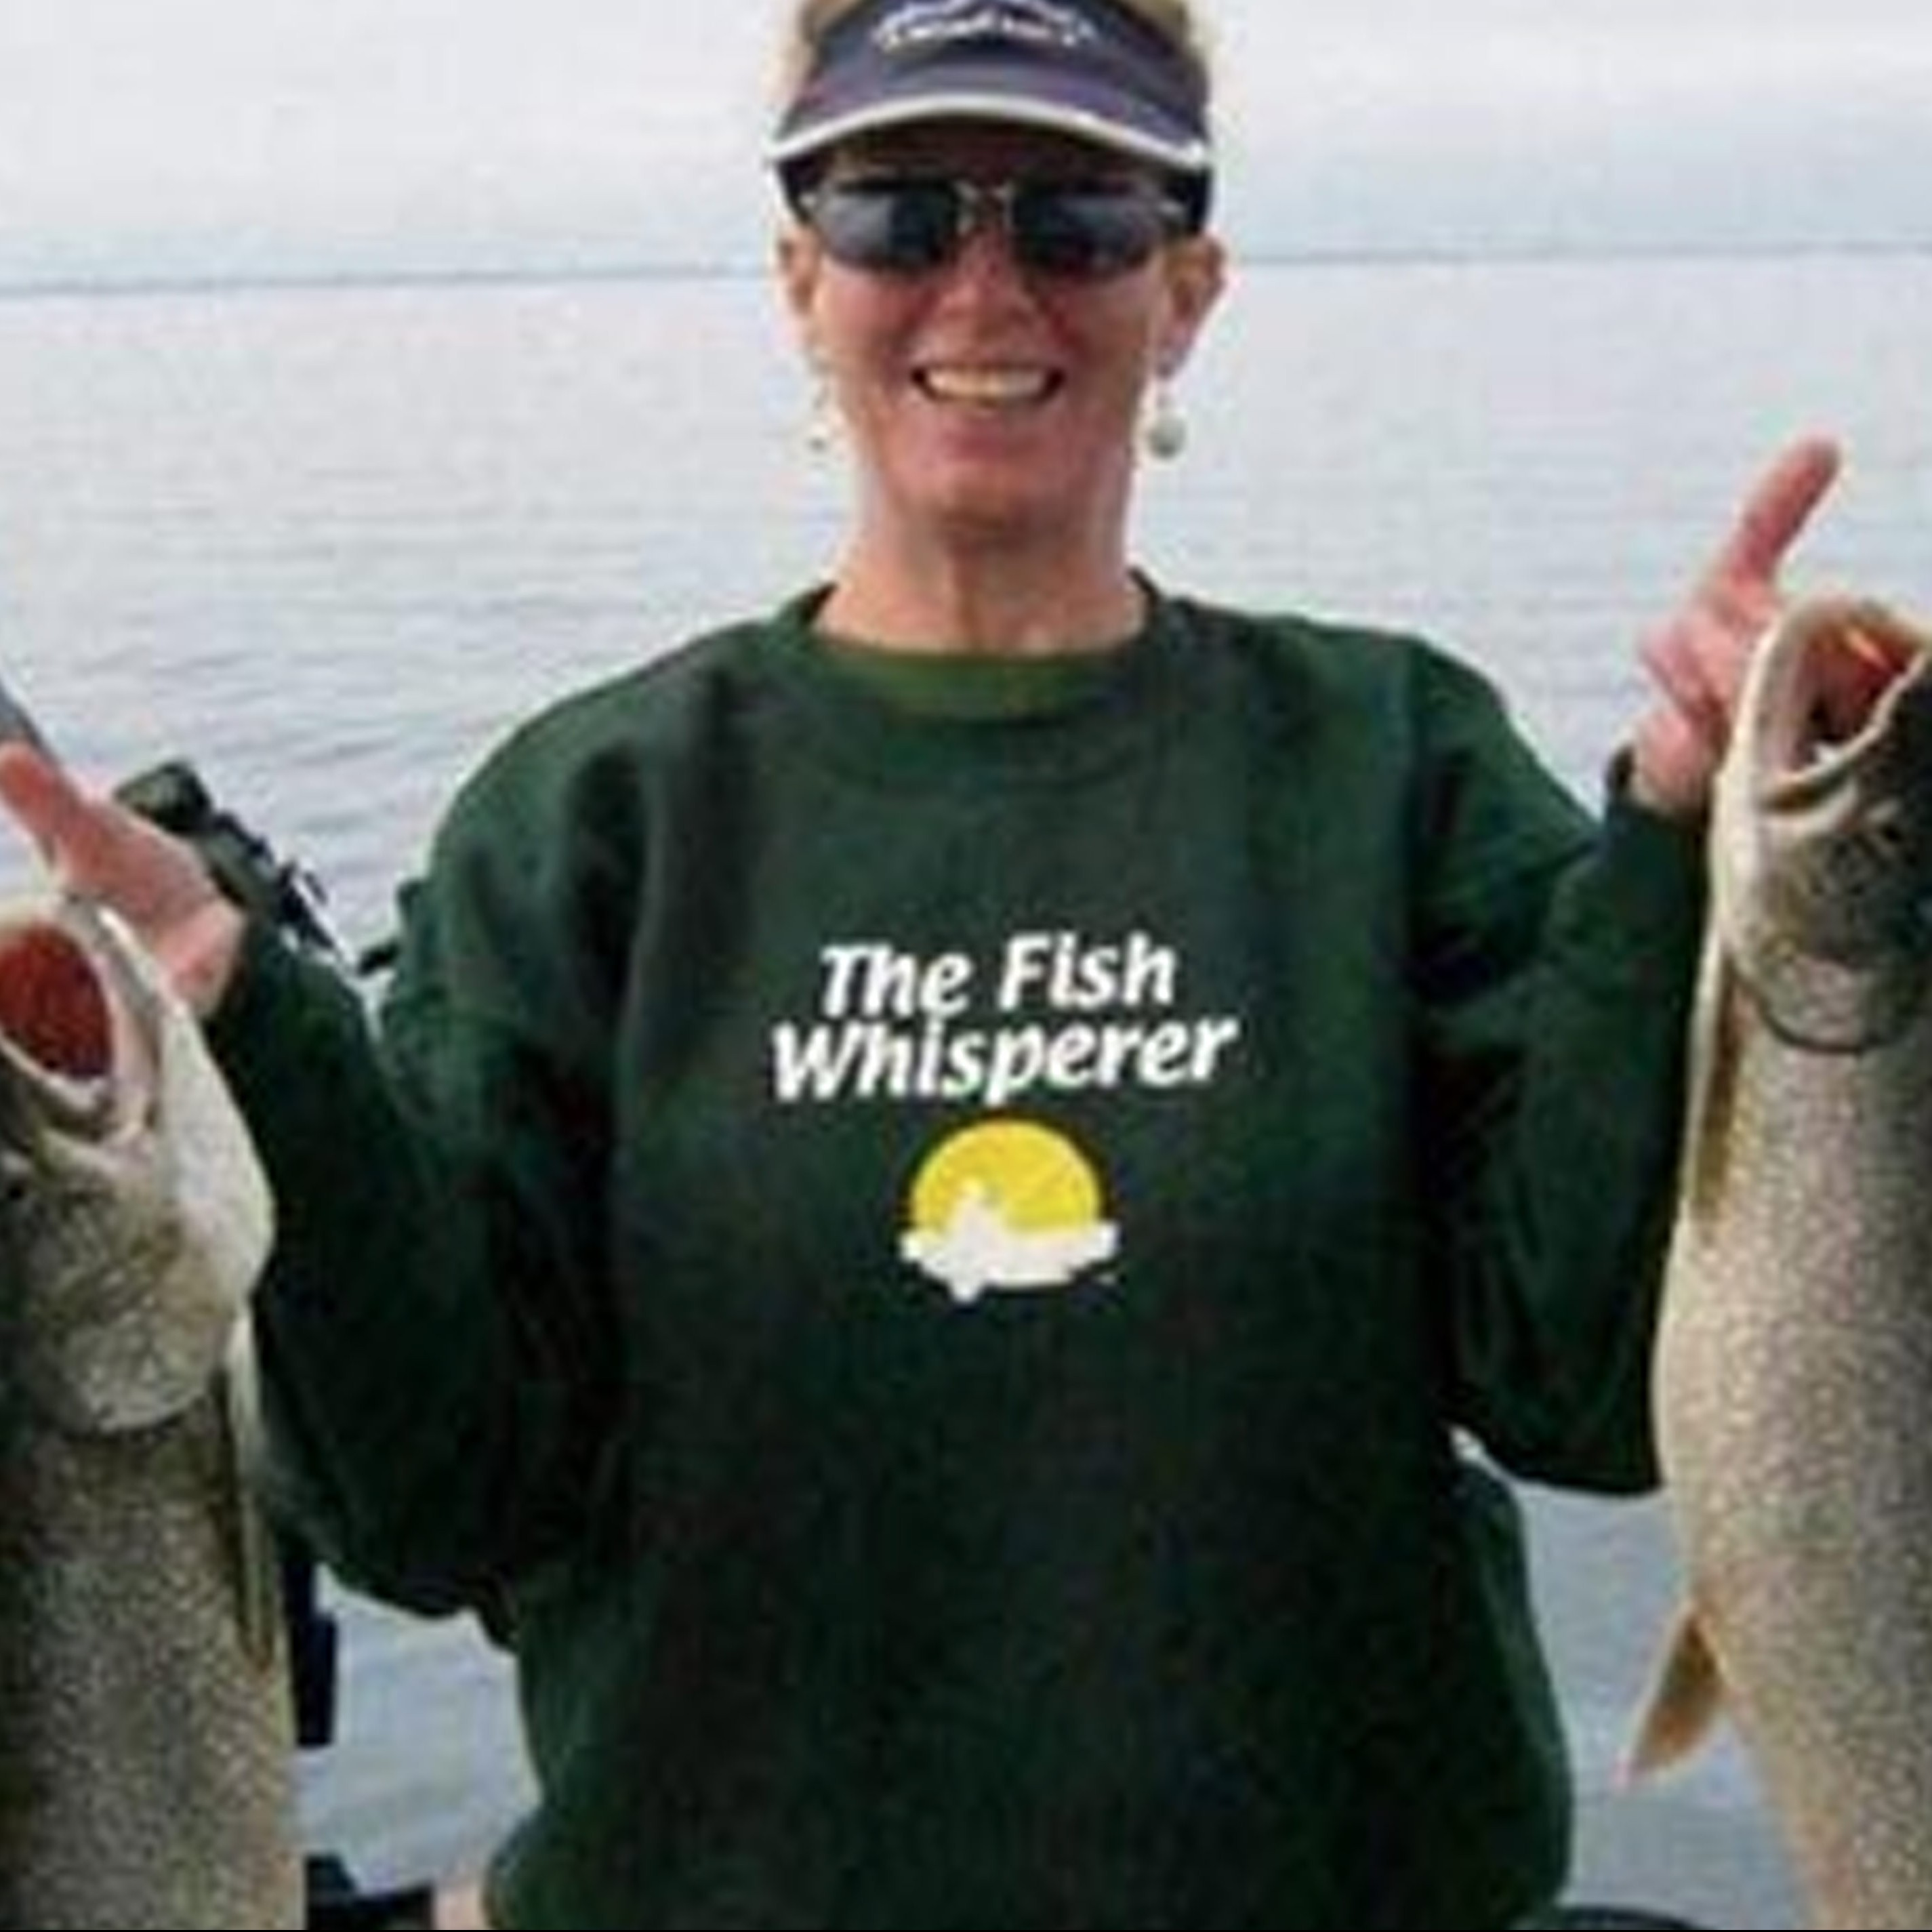 duluth charter fishing guides in duluth minnesota